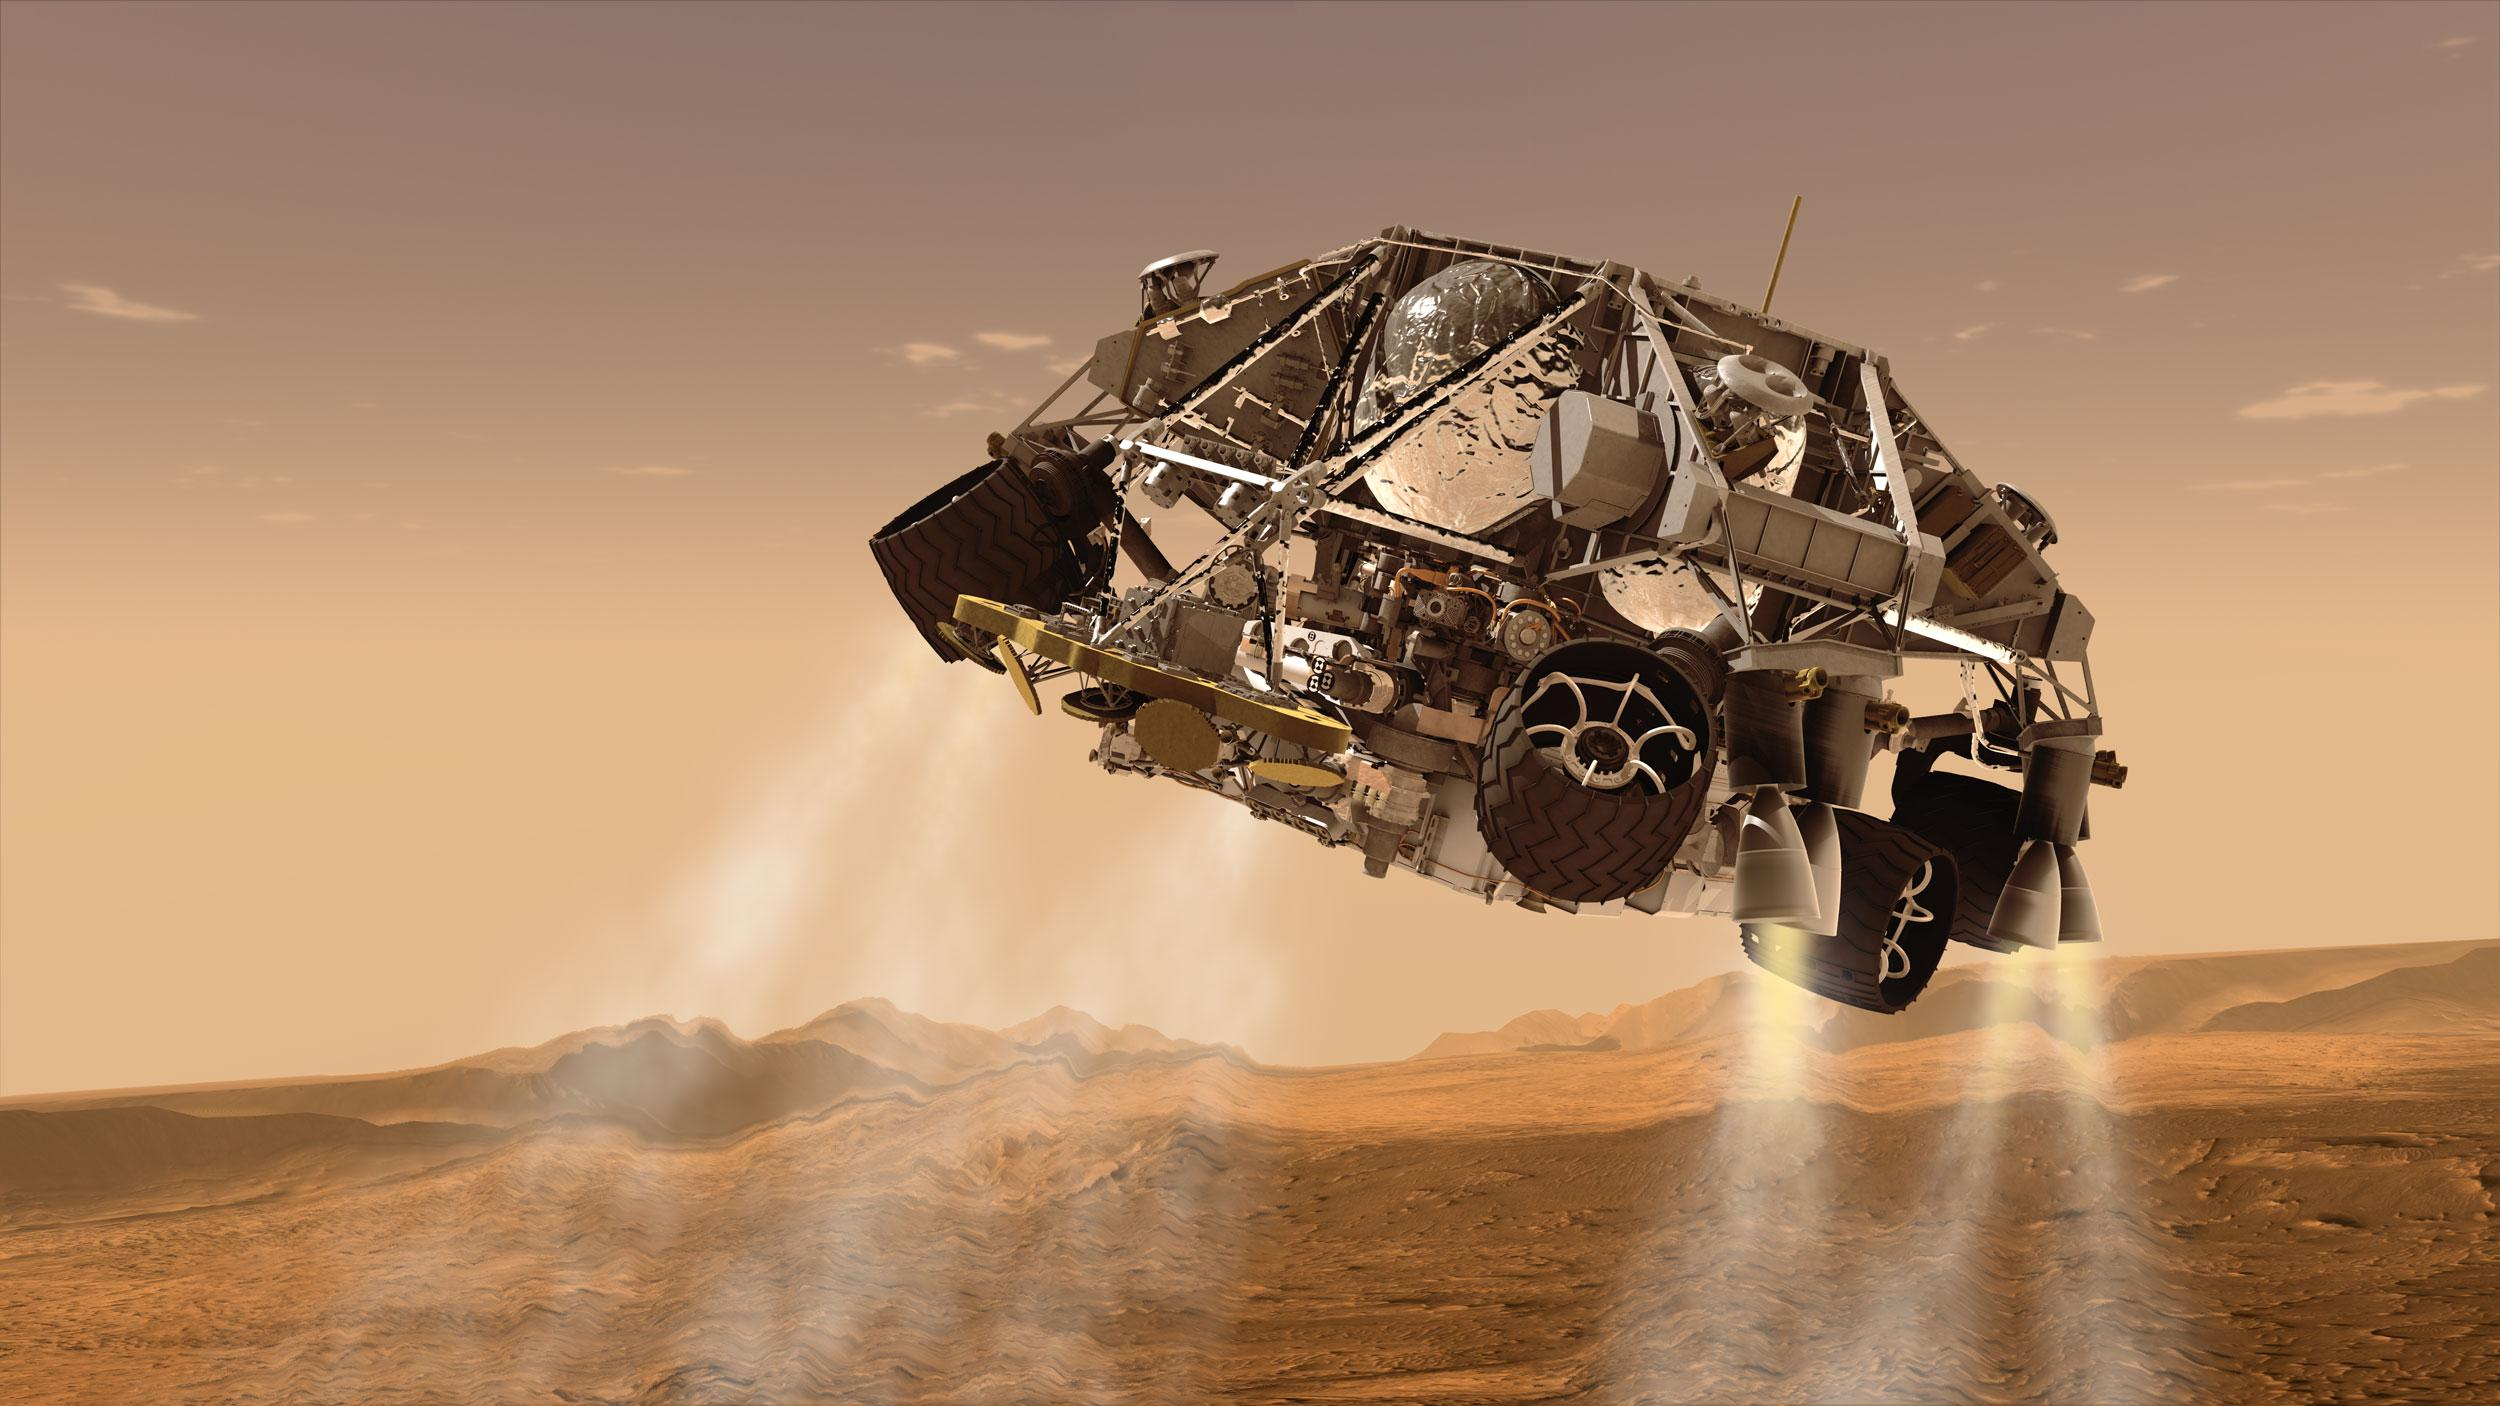 Curiosity Landing Powered Descent Phase The Planetary